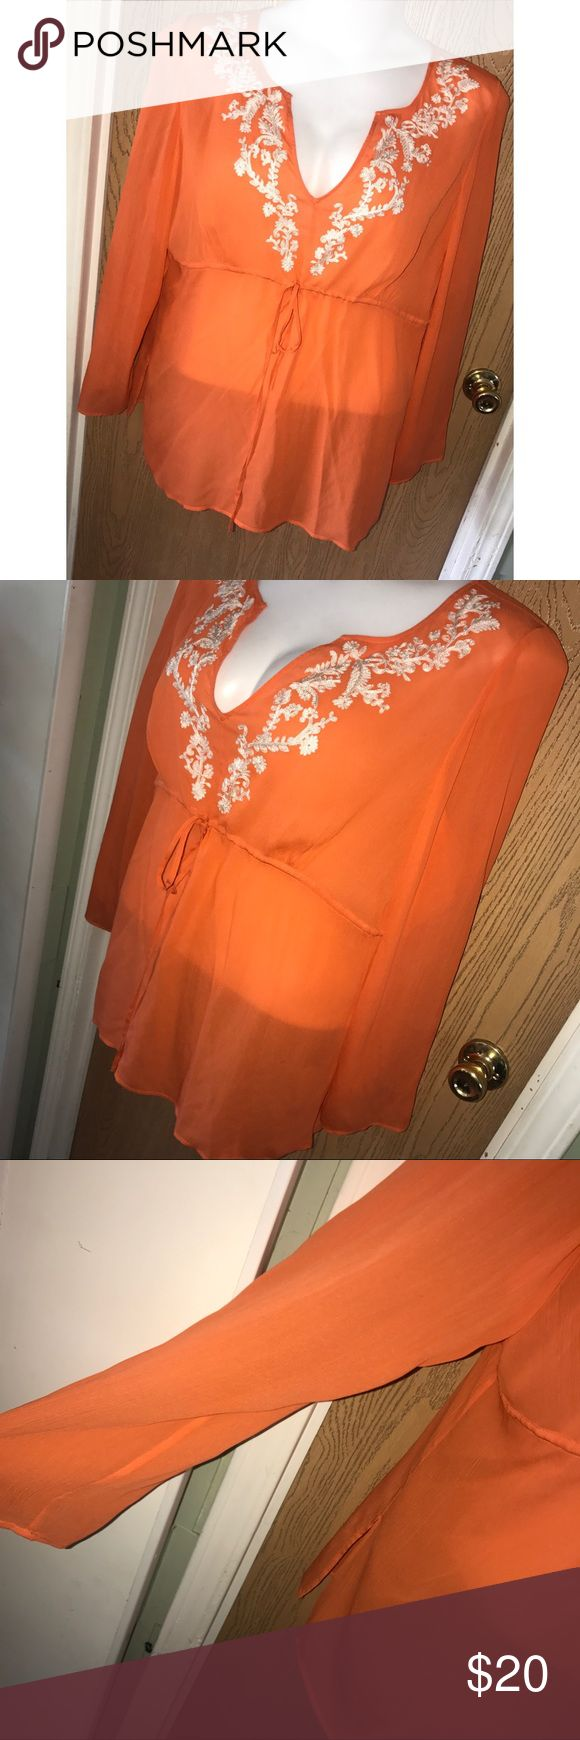 "Sheer silk embroidered orange top Super pretty sheer orange silk embroidered front tie waist top. Good used condition. 28"" from armpit to armpit, 30"" total length. i.e. woman Tops"